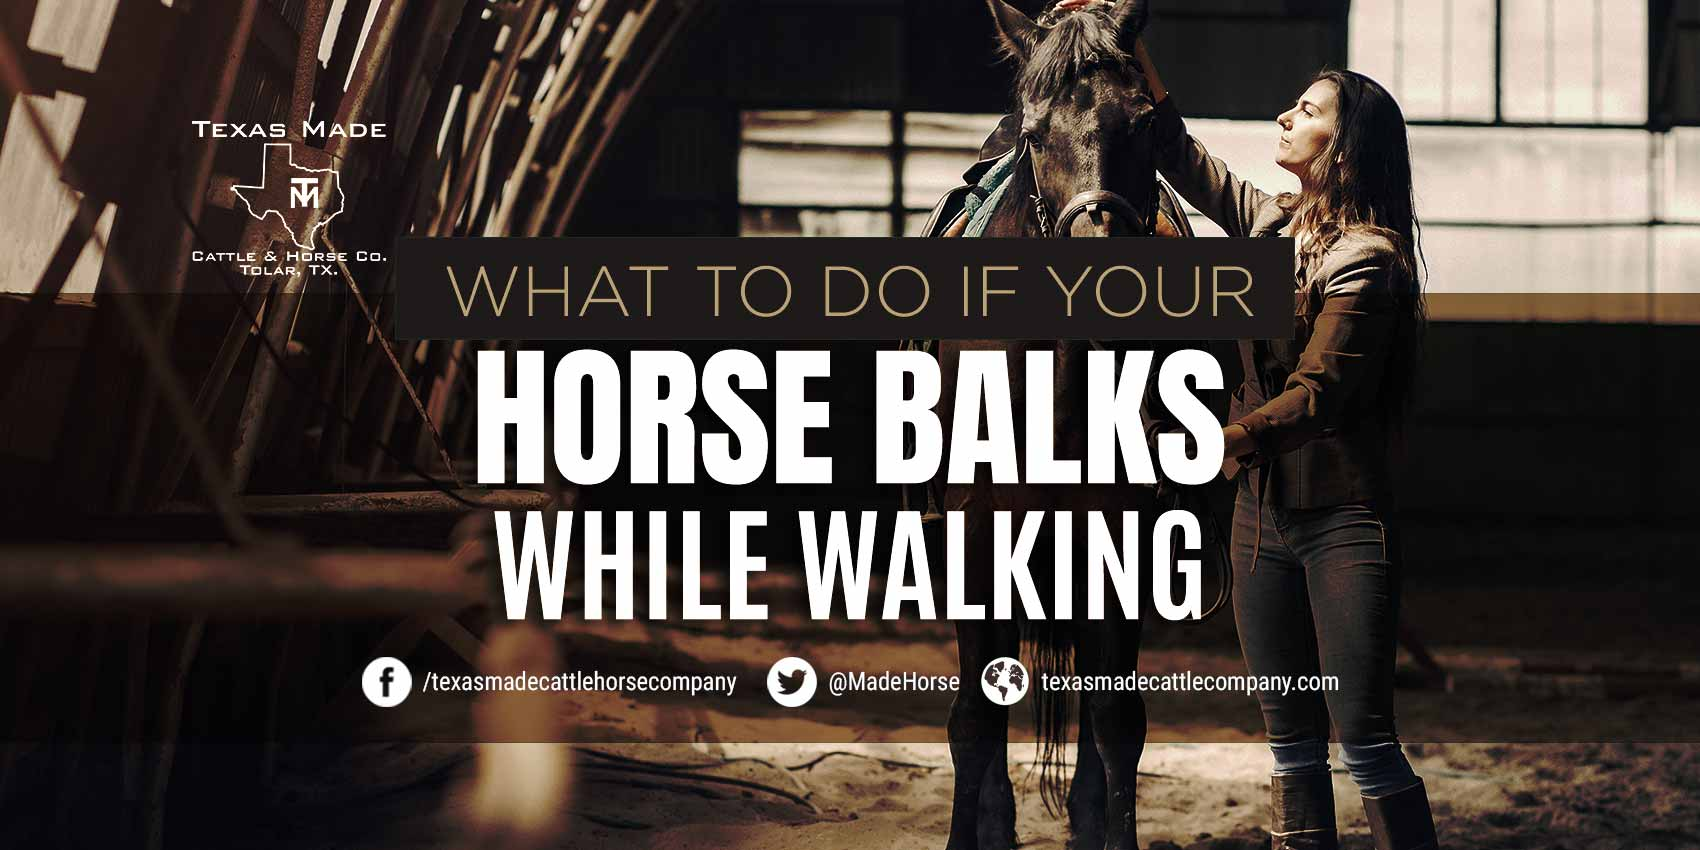 What To Do If Your Horse Balks While Walking